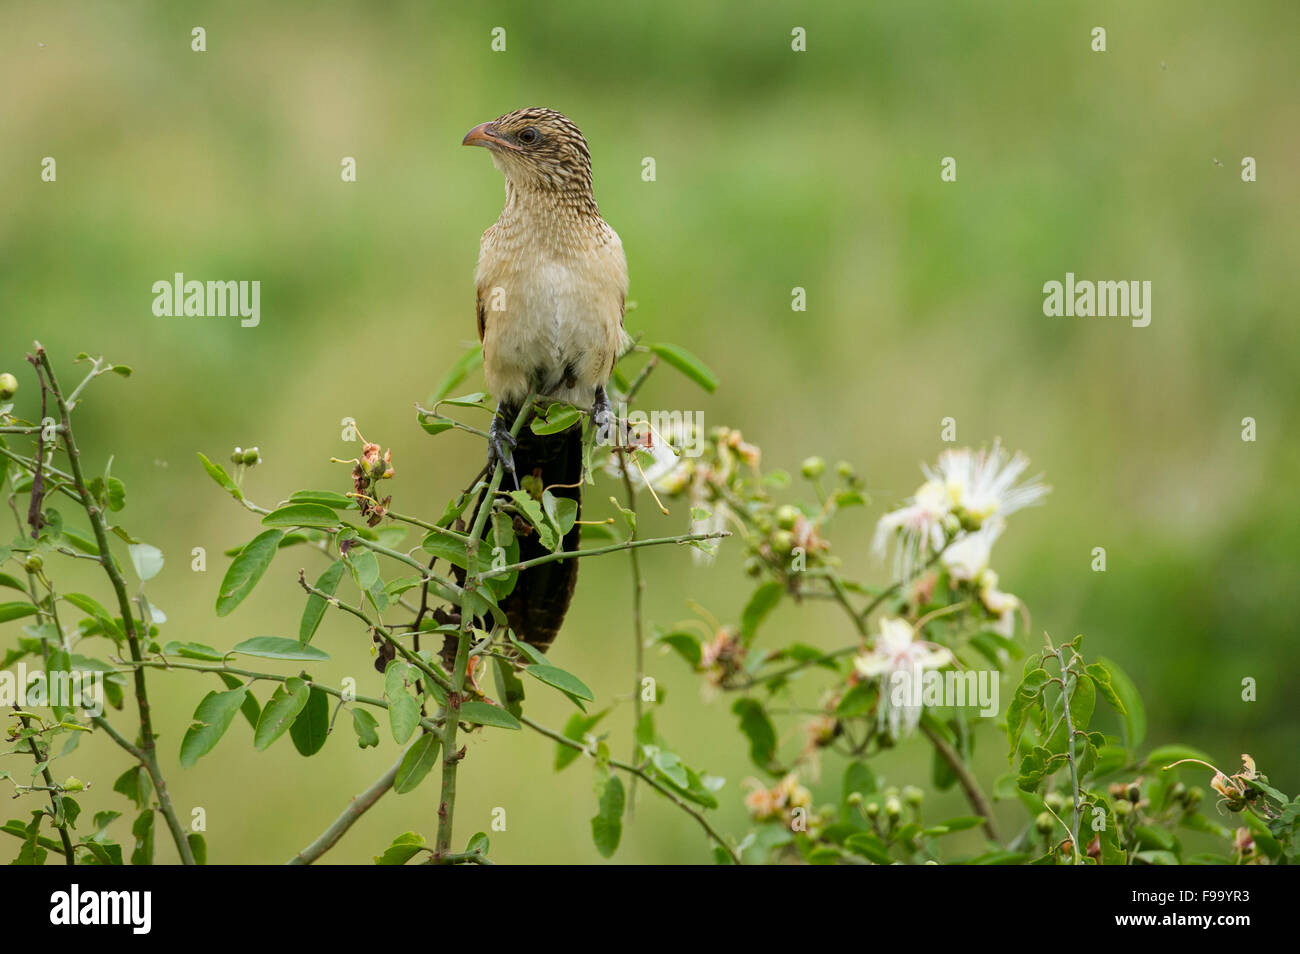 Immature White-browed coucal, Centropus superciliosus, Ishasha sector in Queen Elizabeth National Park, Uganda - Stock Image